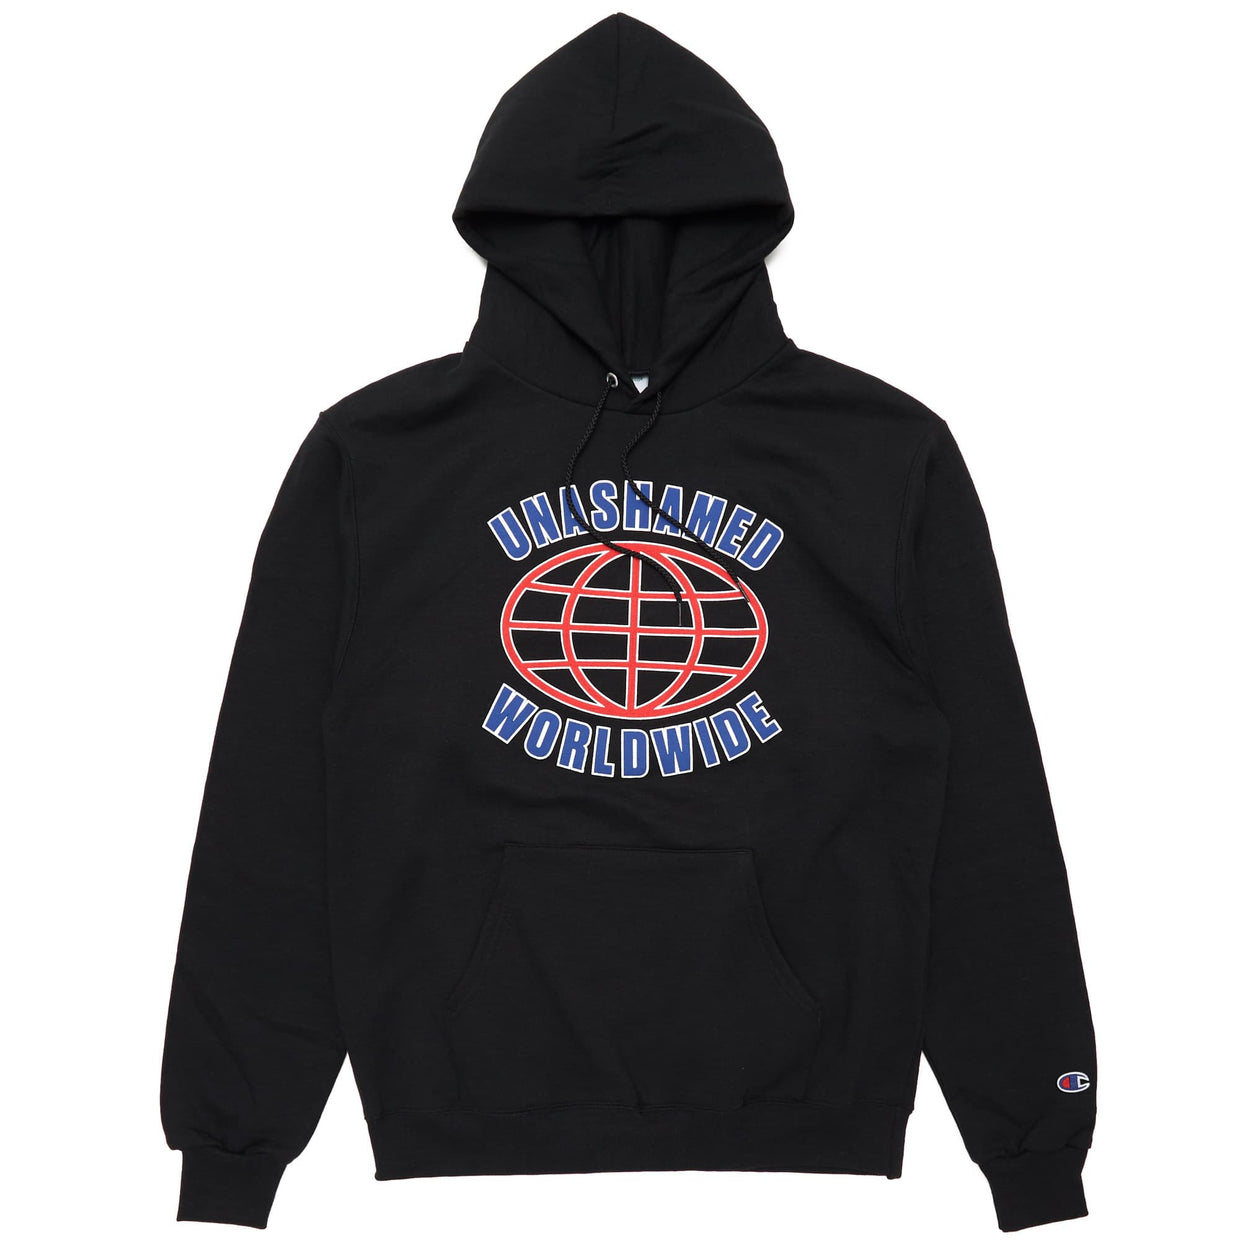 'Unashamed Worldwide' Champion Hoodie - Black